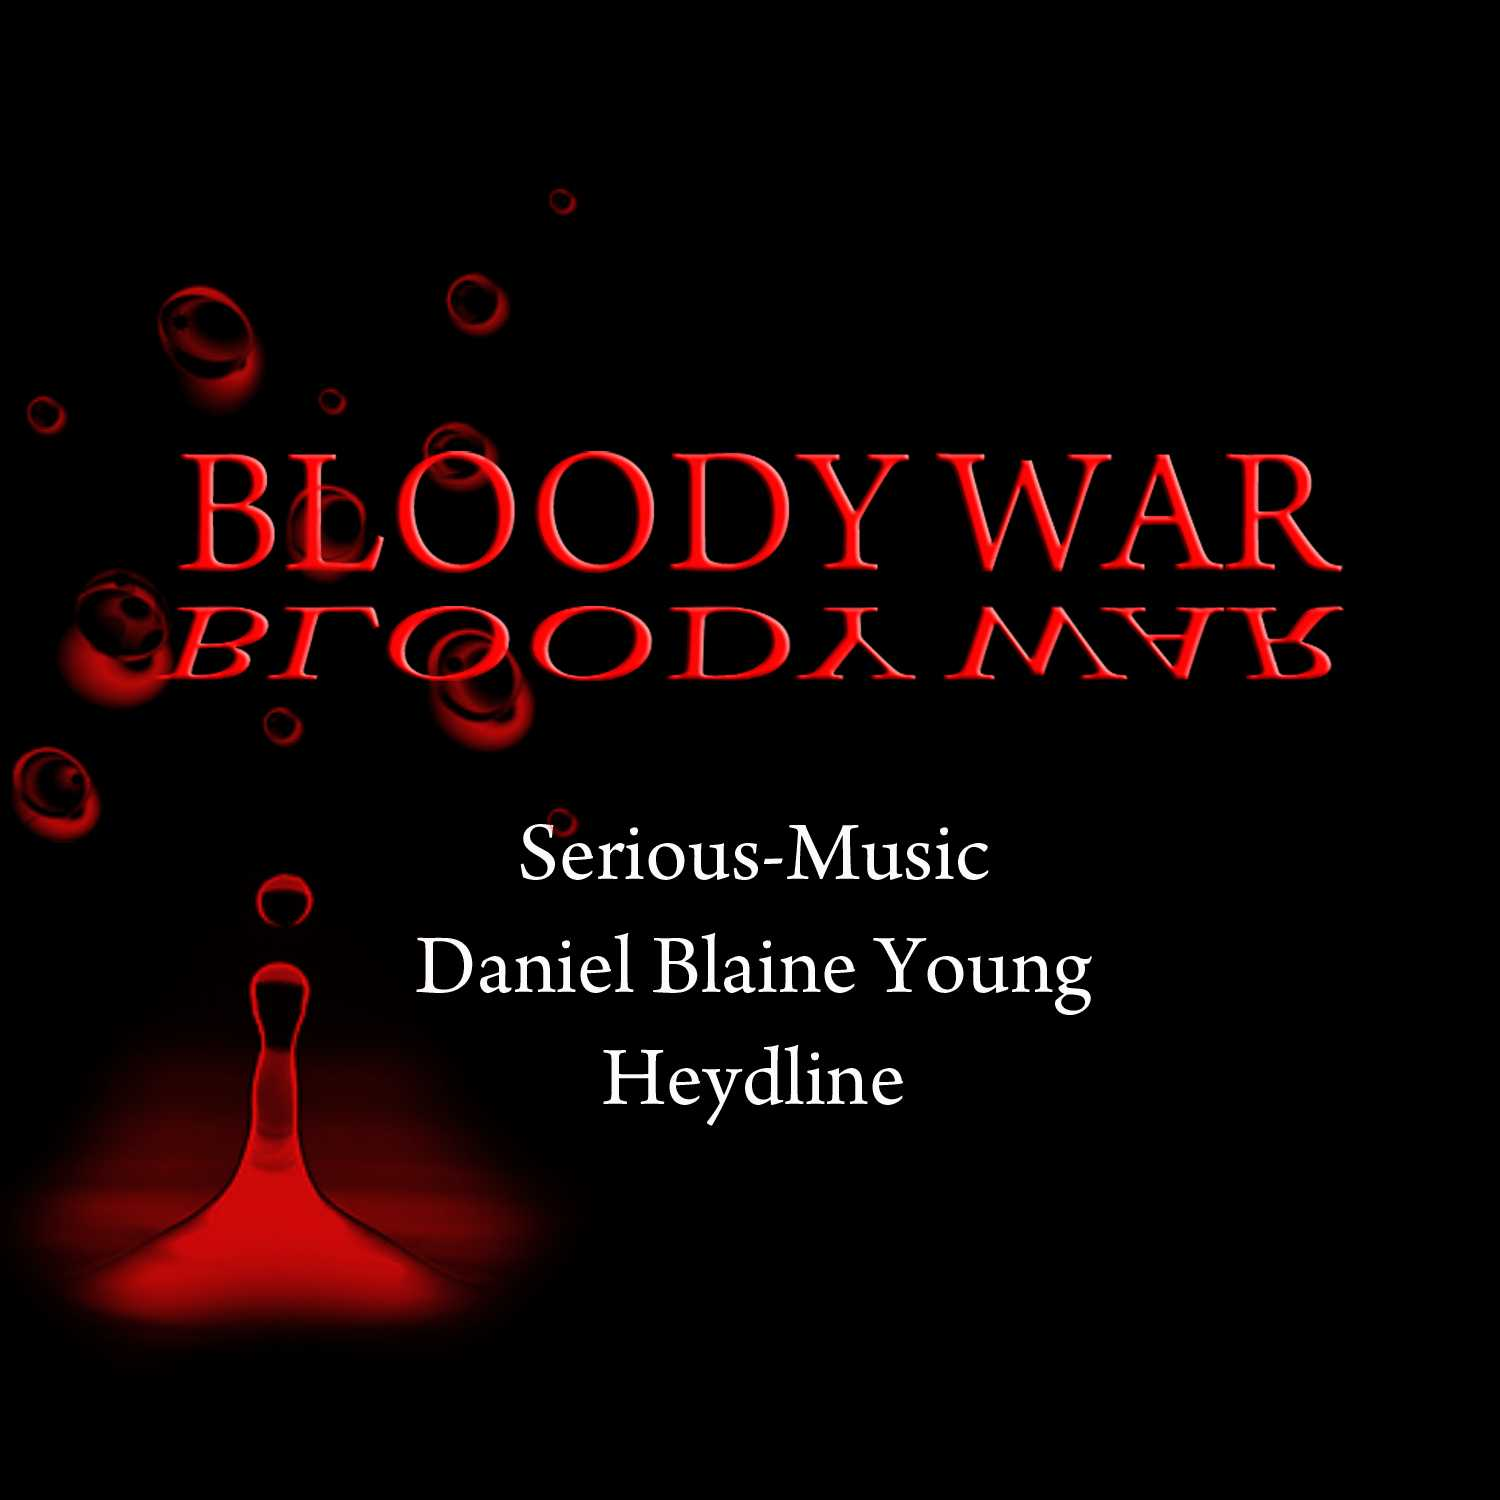 Bloody War feat. Danlb Young, Heydline - Album WAR IS NOT THE ANSWER